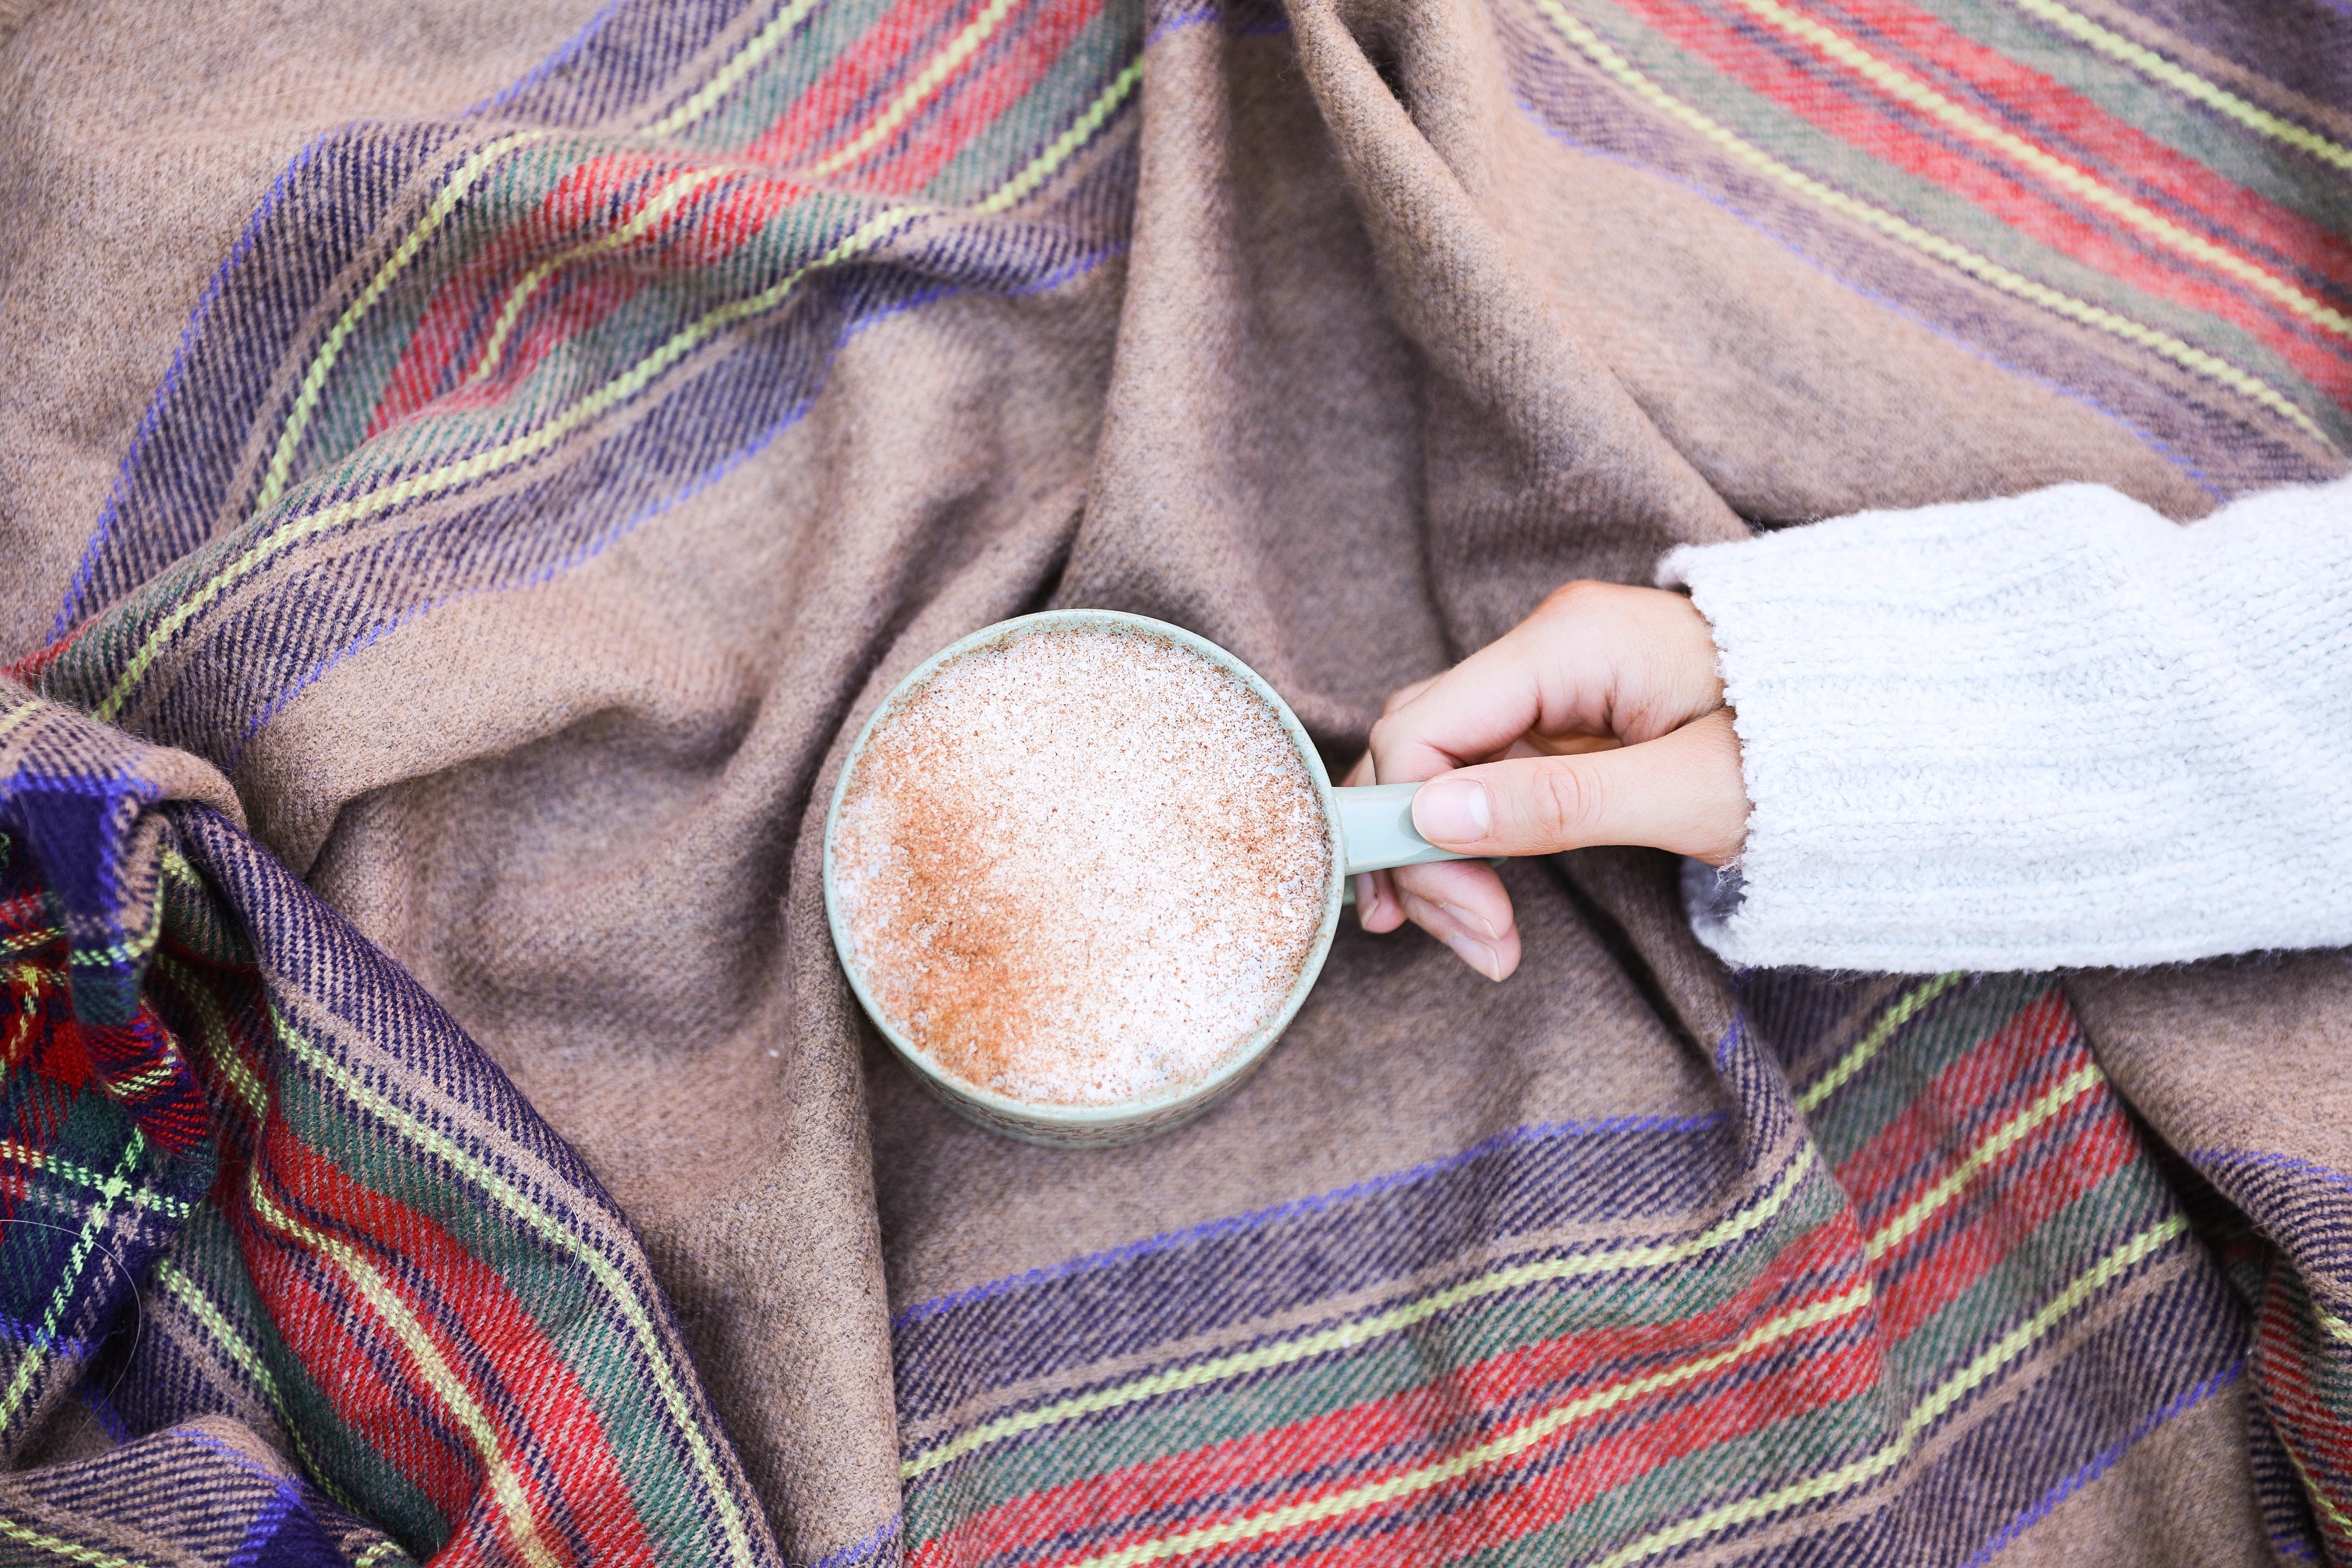 Blanket scarf and coffee mug fall inspiration photo 4P6A1694 copy